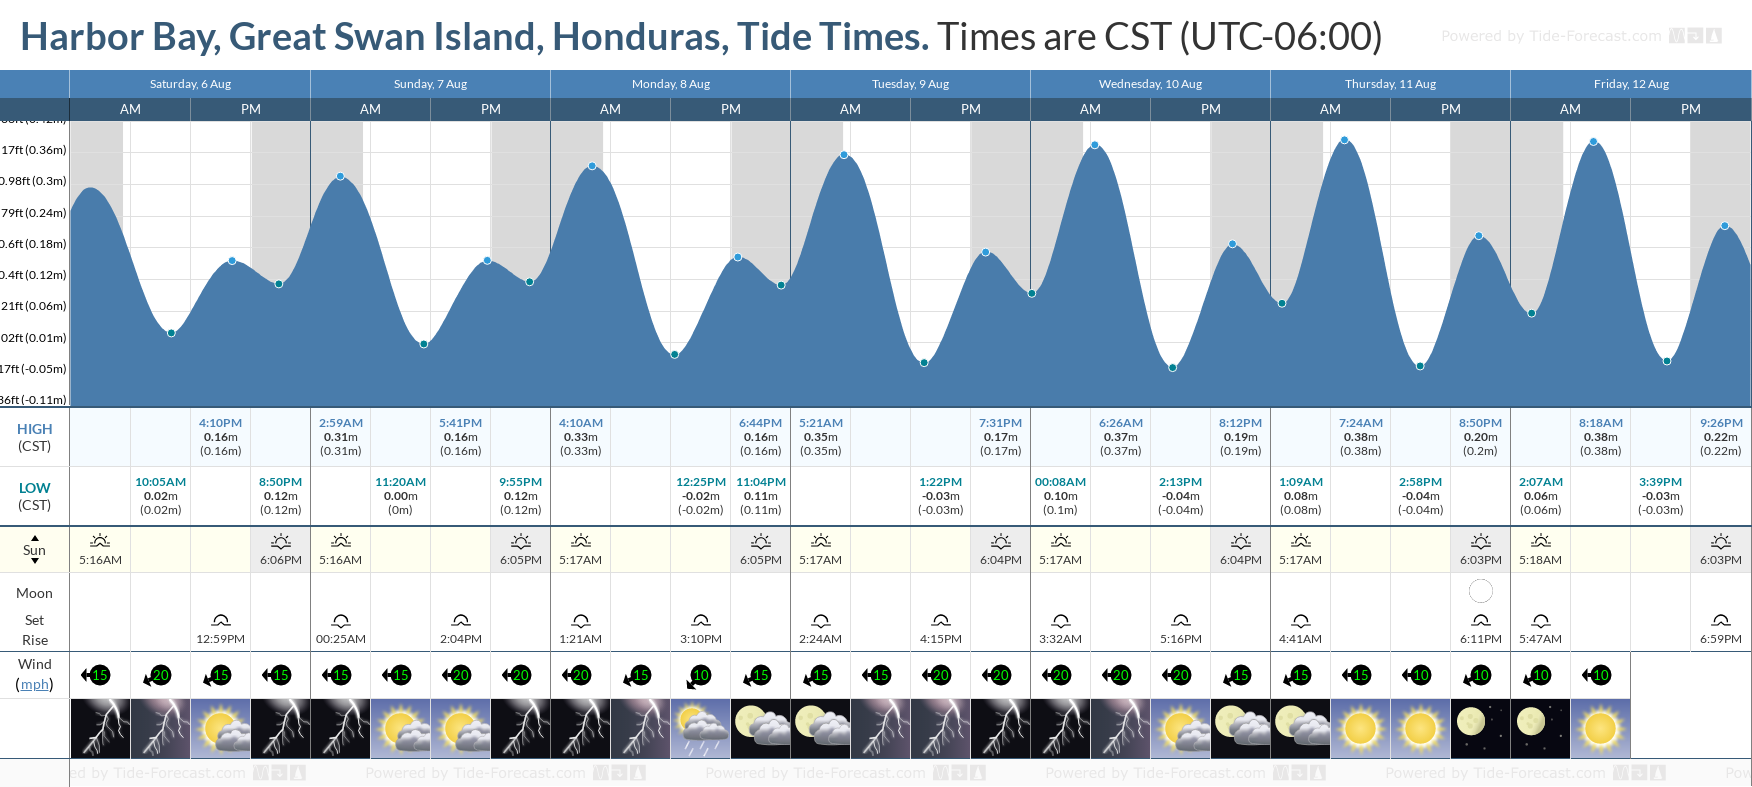 Harbor Bay, Great Swan Island, Honduras Tide Chart including high and low tide tide times for the next 7 days